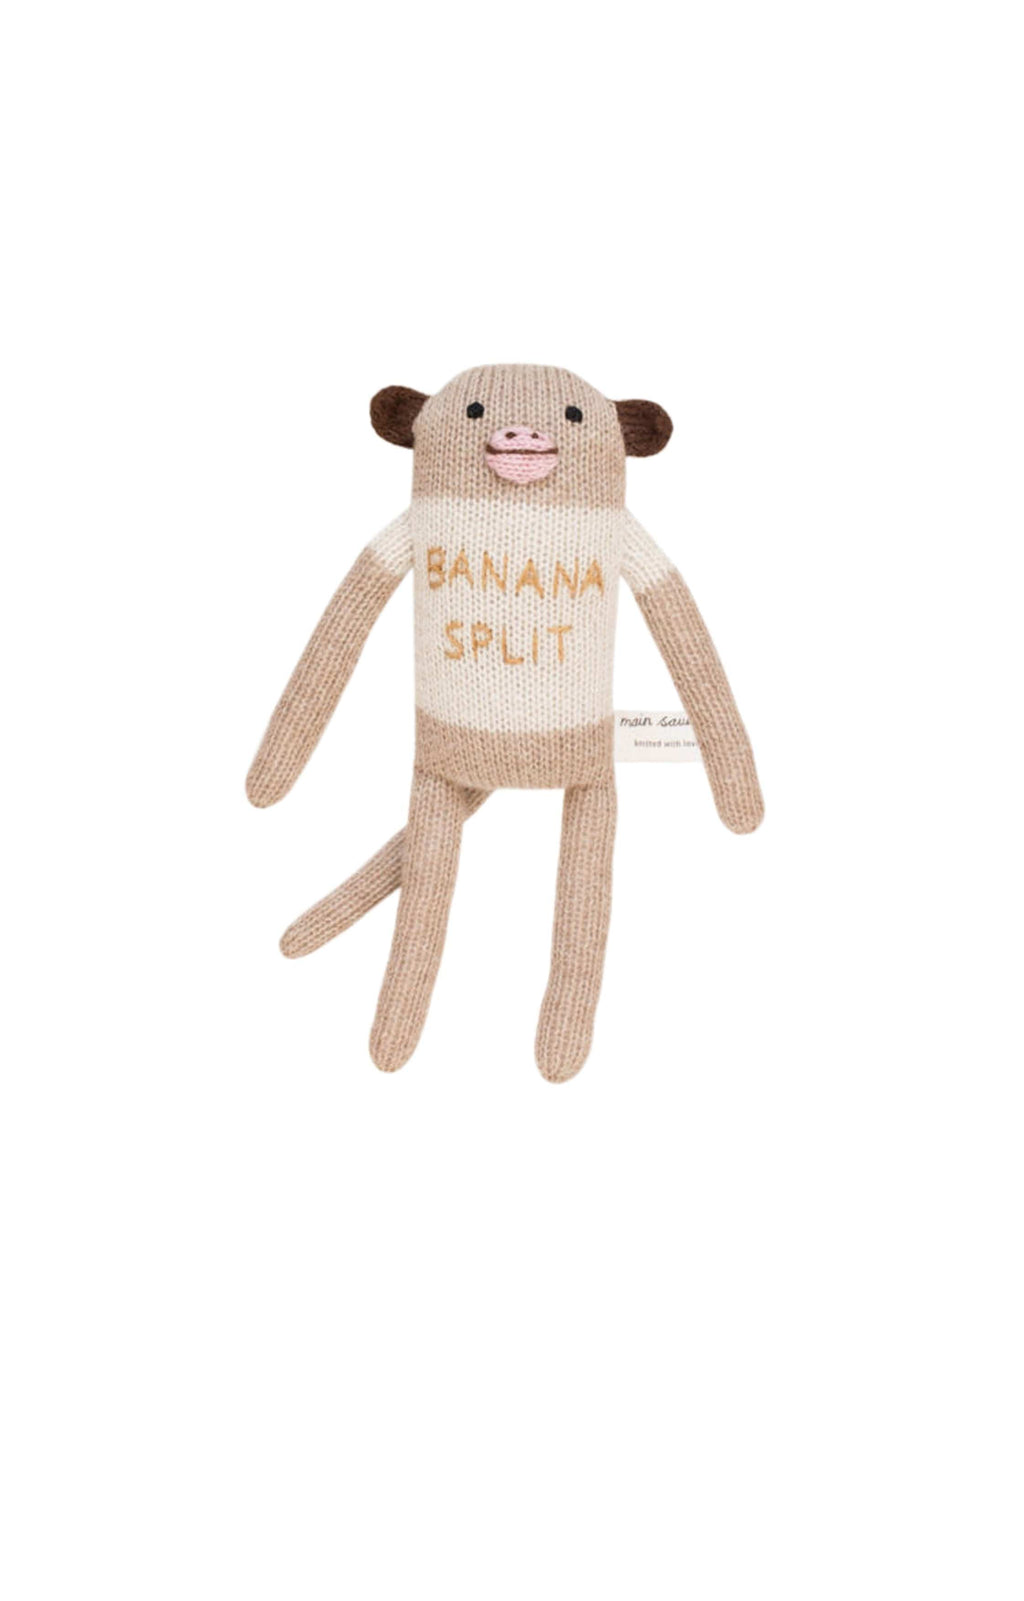 "Main Sauvage ""banana split"" monkey knit toy (Pre-Order Feb)"